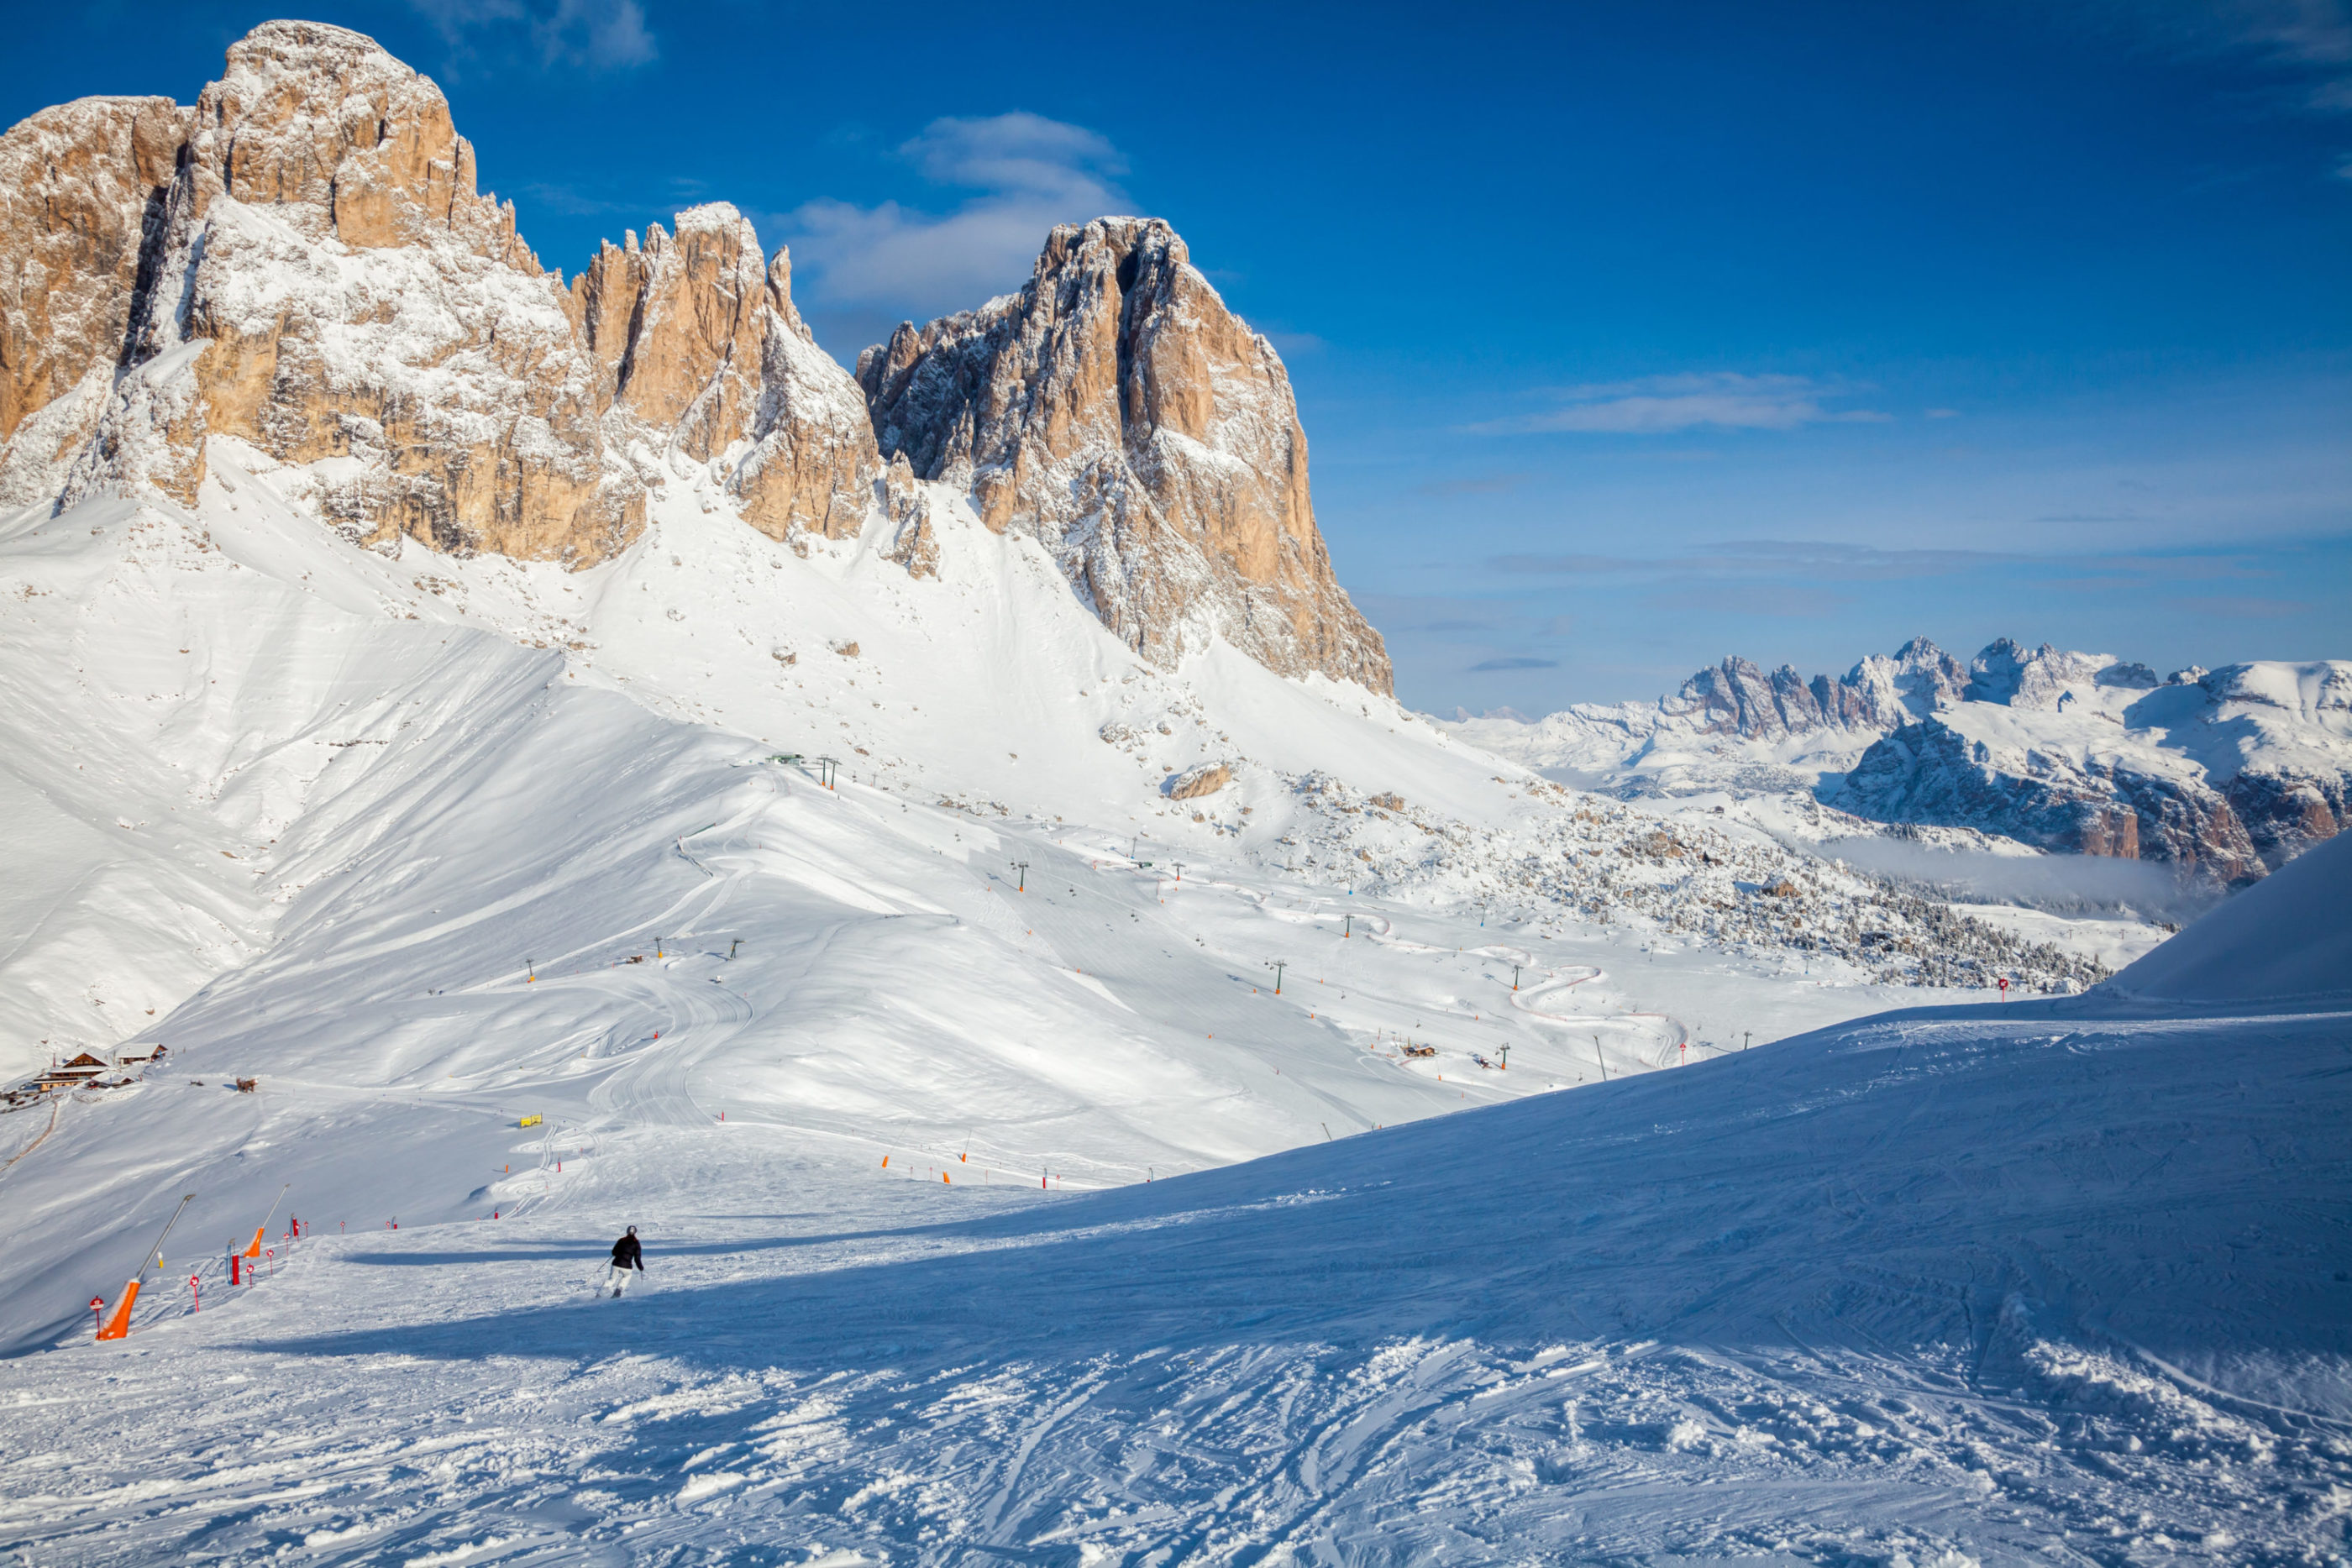 Alpe di Siusi Ski Resort in Dolomites